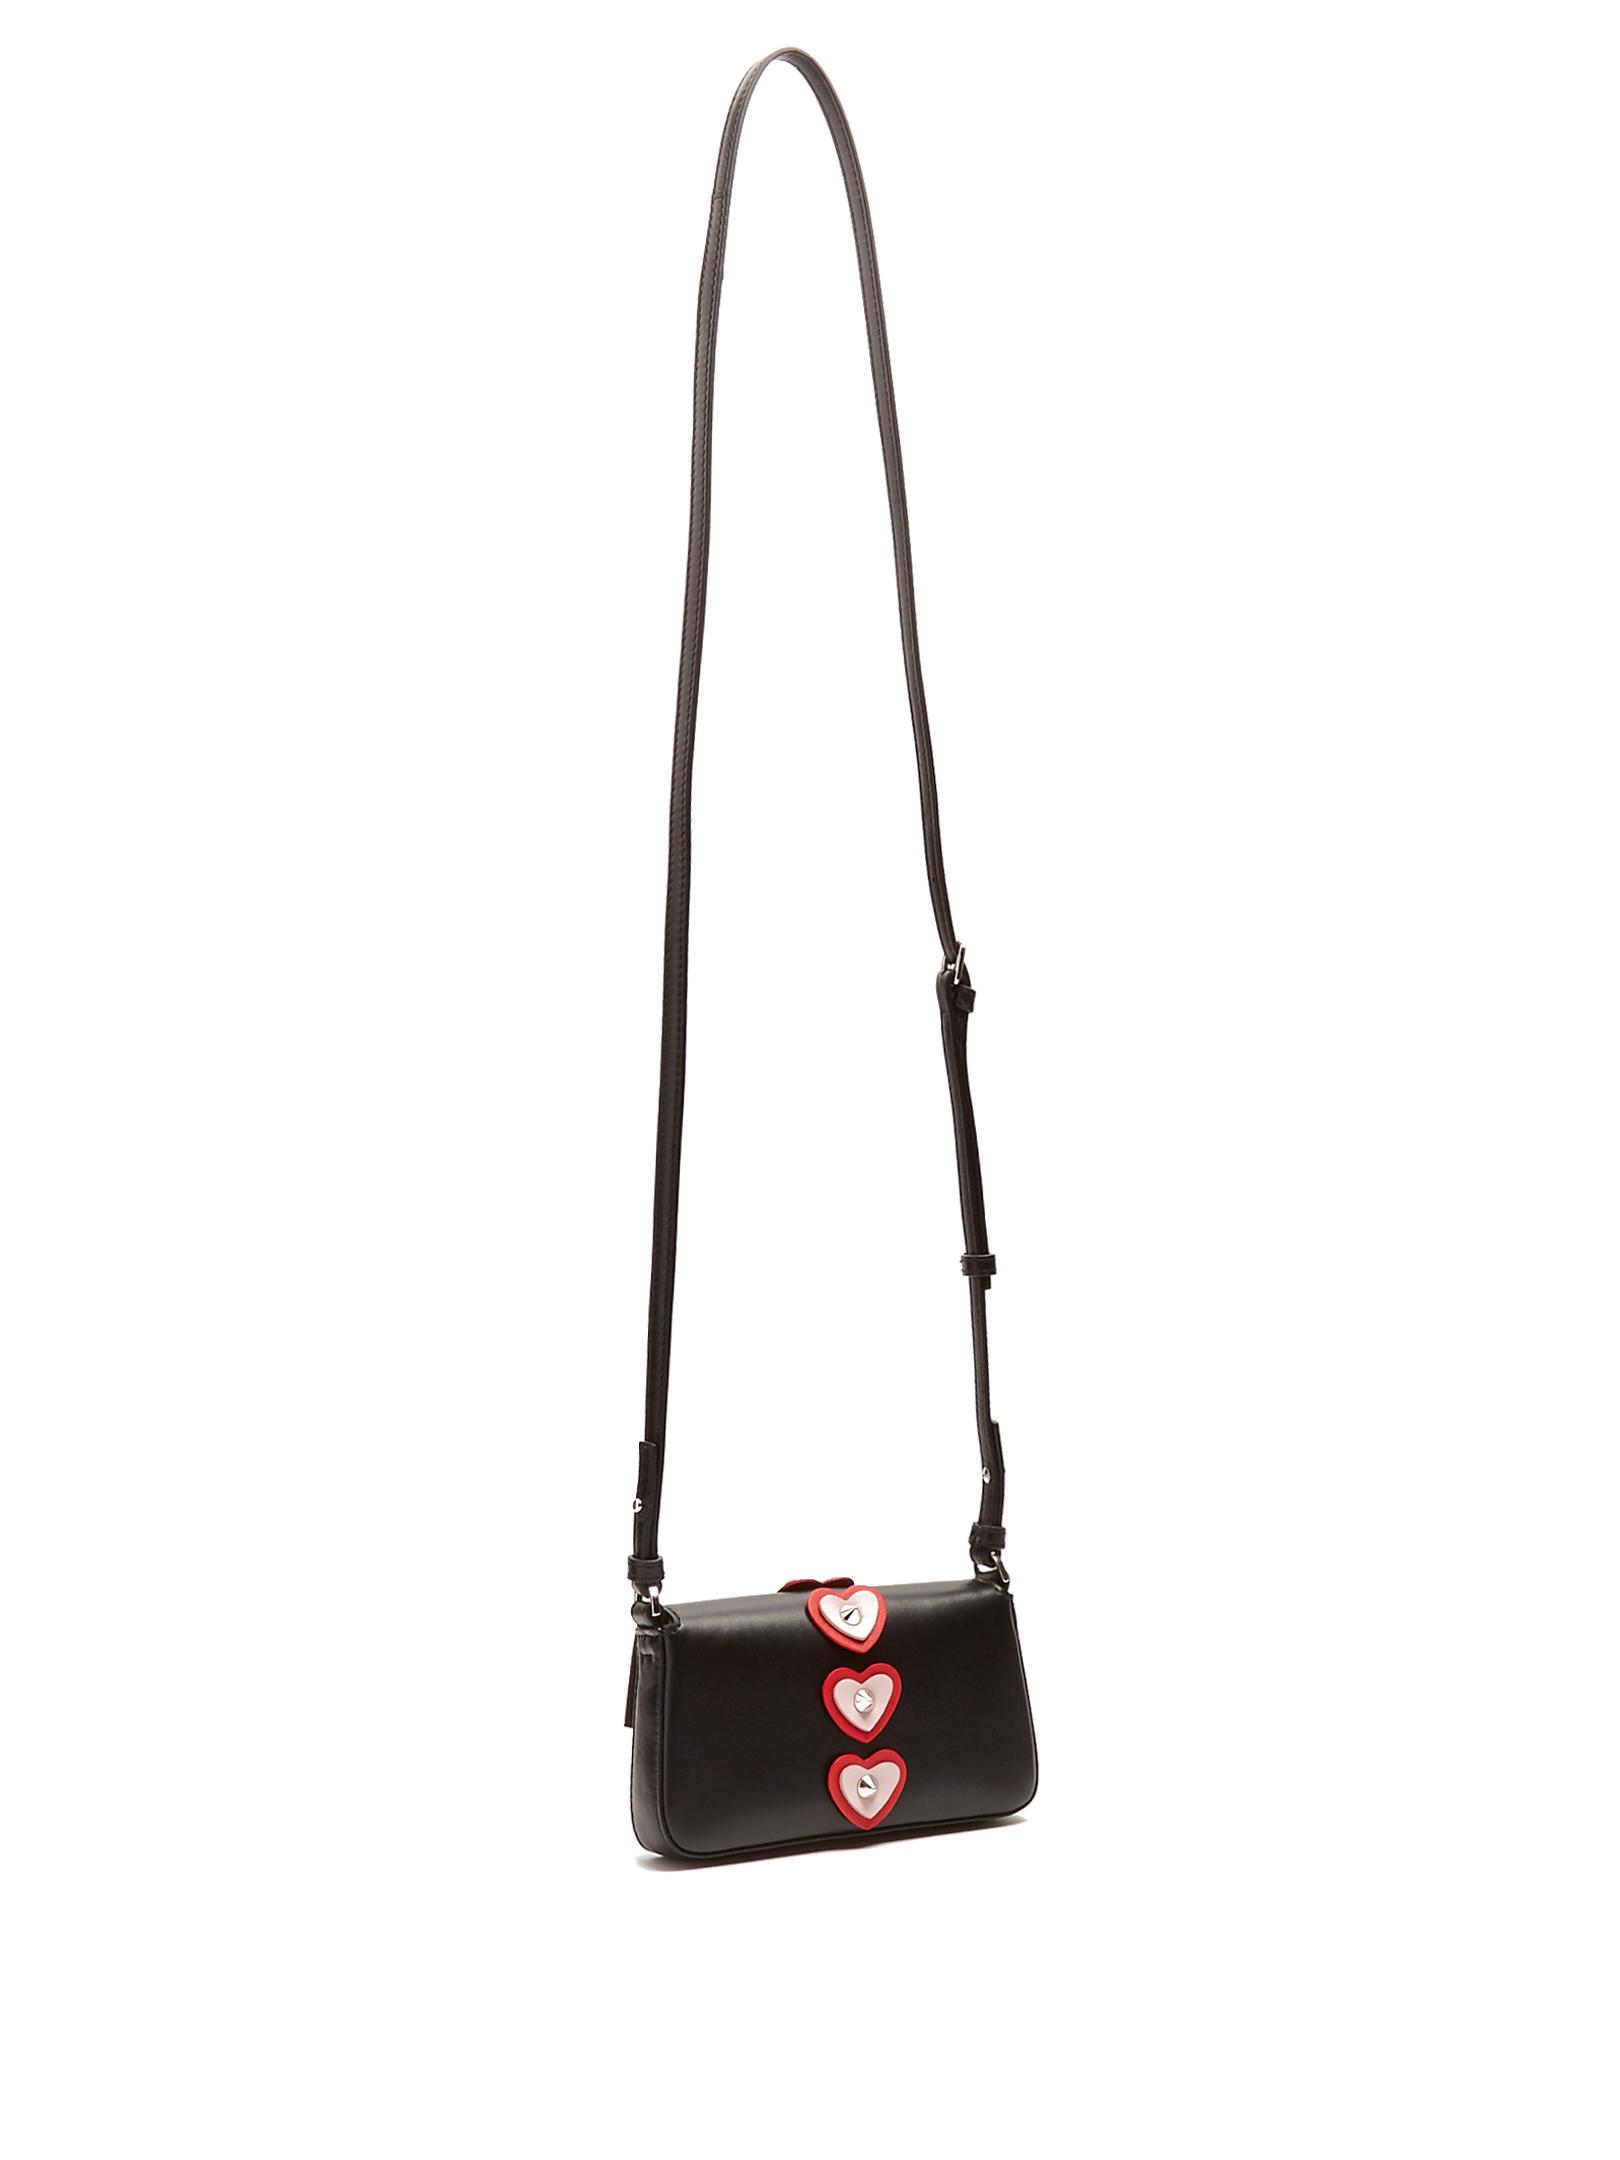 3a223d1bd10d Lyst - Fendi Micro Baguette Heart-appliqué Cross-body Bag in Black